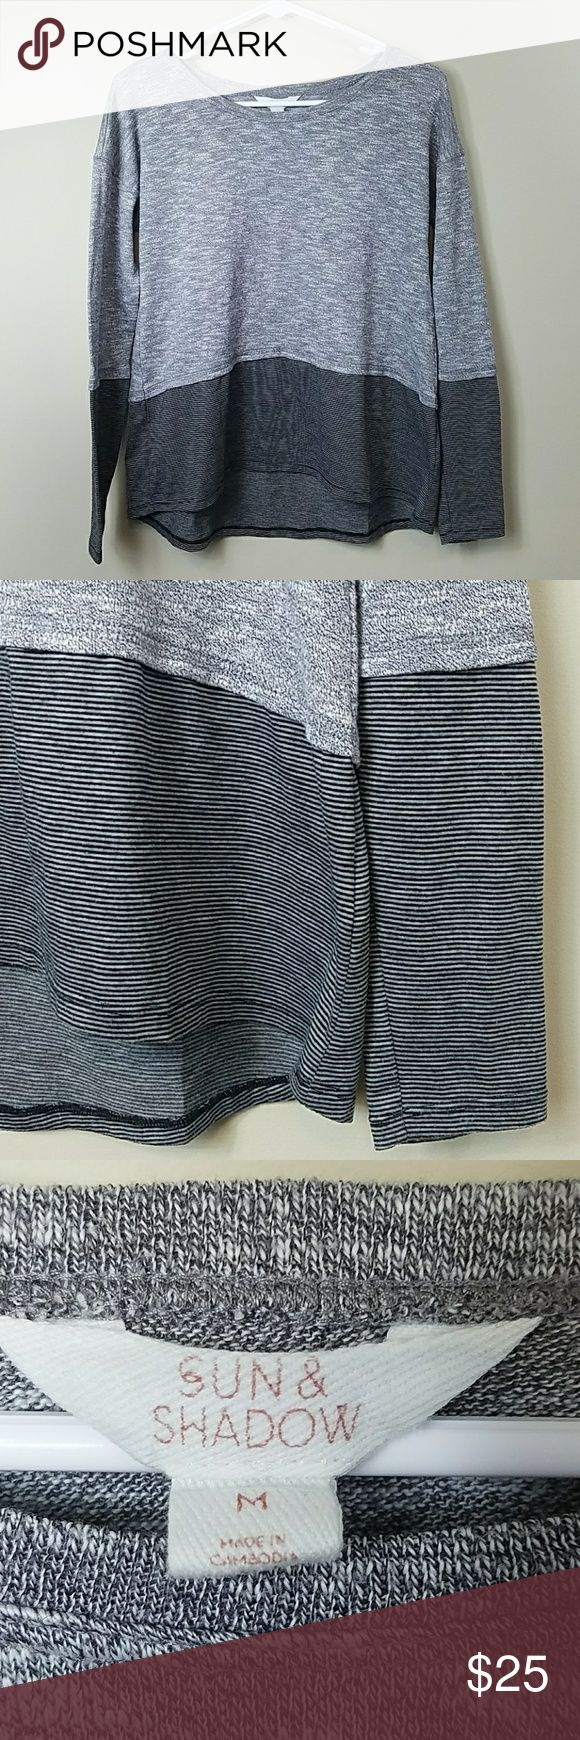 """Nordstrom Sun & Shadow Layered Look Top Nordstrom Sun & Shadow Layered Look Top.   Size medium.  Heathered gray upper with gray & black striped fabric on lower part and sleeves.  Super cute athleisure top! 60% cotton, 40% polyester. 19"""" across the bust.  22.5"""" front length.  25.5"""" back length. Sun & Shadow Tops"""